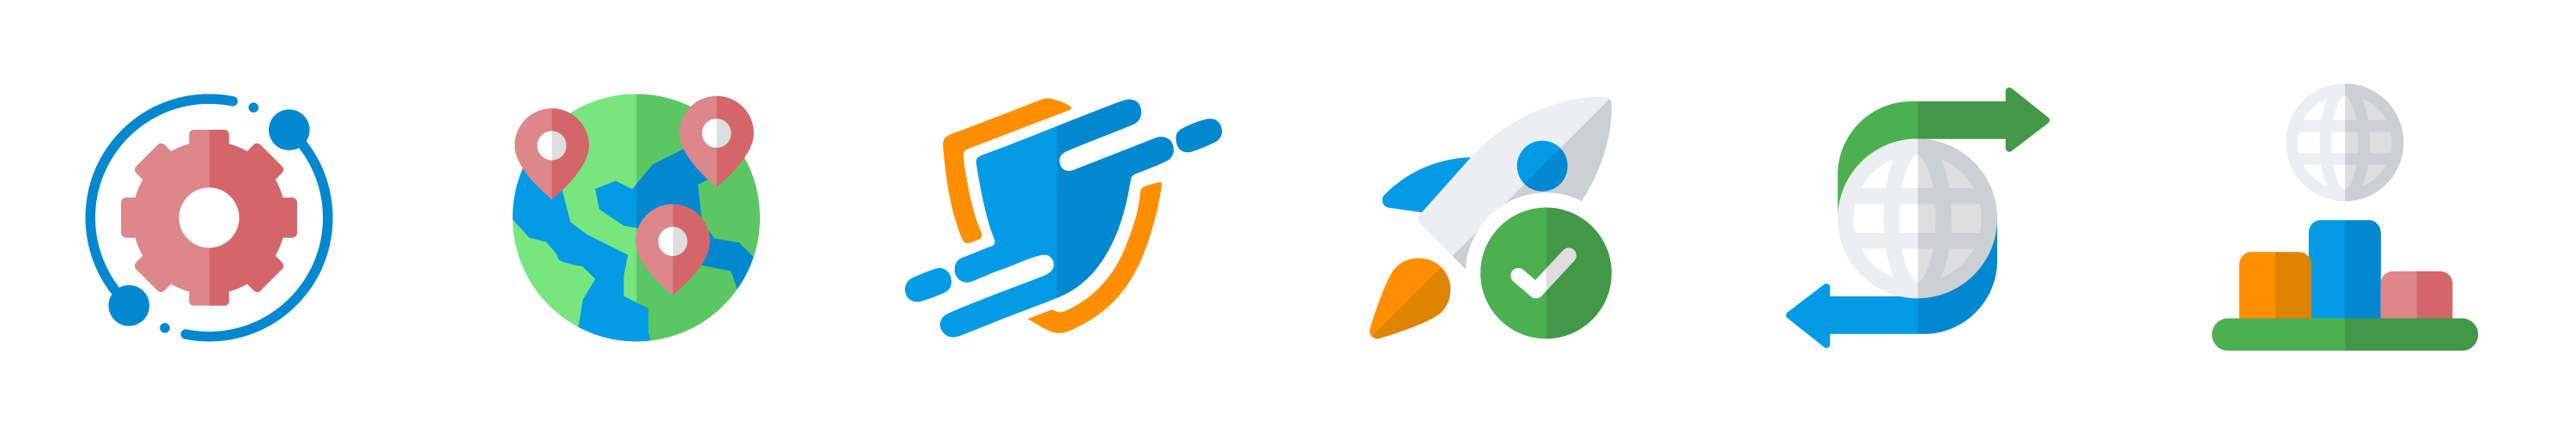 icons representing VPS hosting